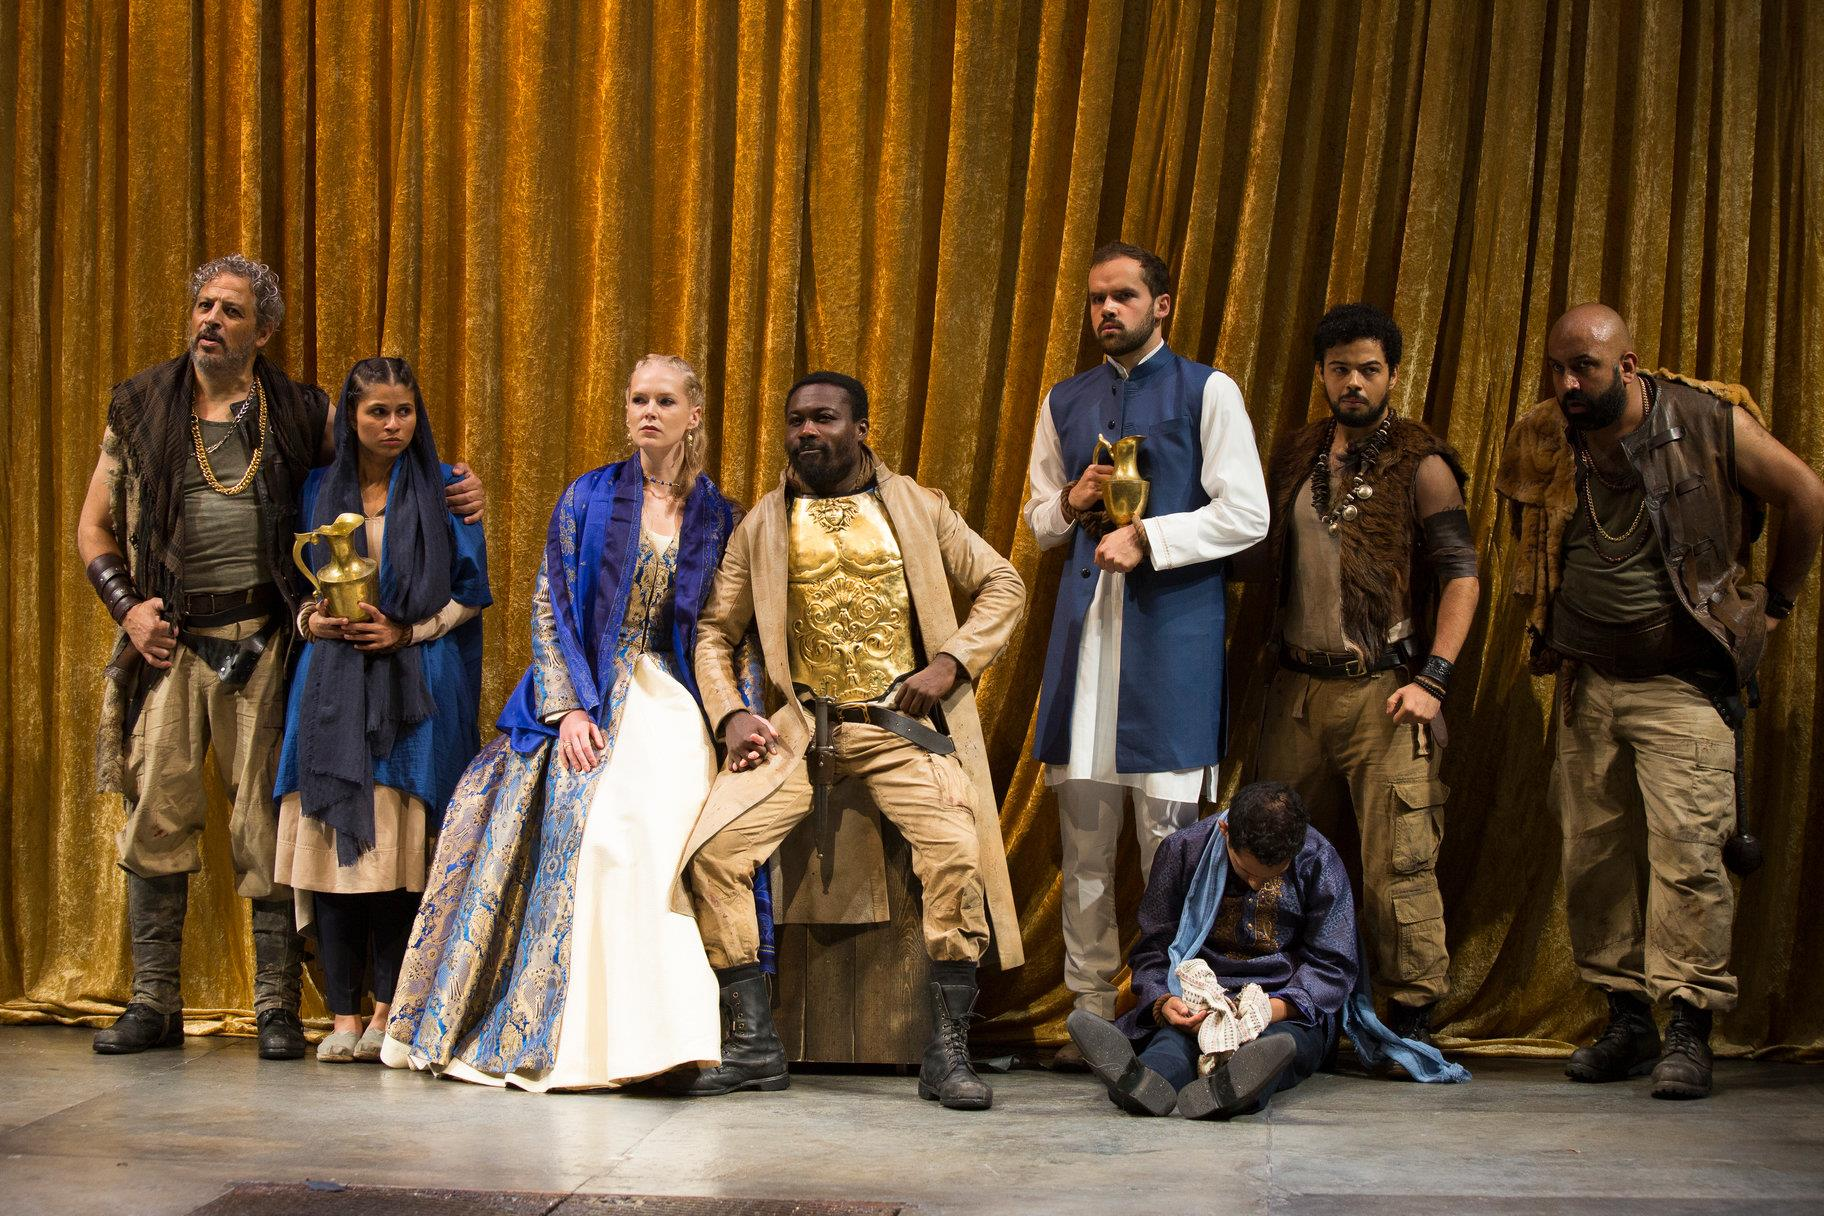 © Ellie Kurttz, RSC (David Rubin as Techelles, Zainab Hasan as Anippe, Rosy McEwen as Zenocrate, Jude Owusu as Tamburlaine, Ralph Davis as Agydas, Salman Akhtar as Capolin, Riad Richie as Usumcasane, and Naveed Khan as Kasap)